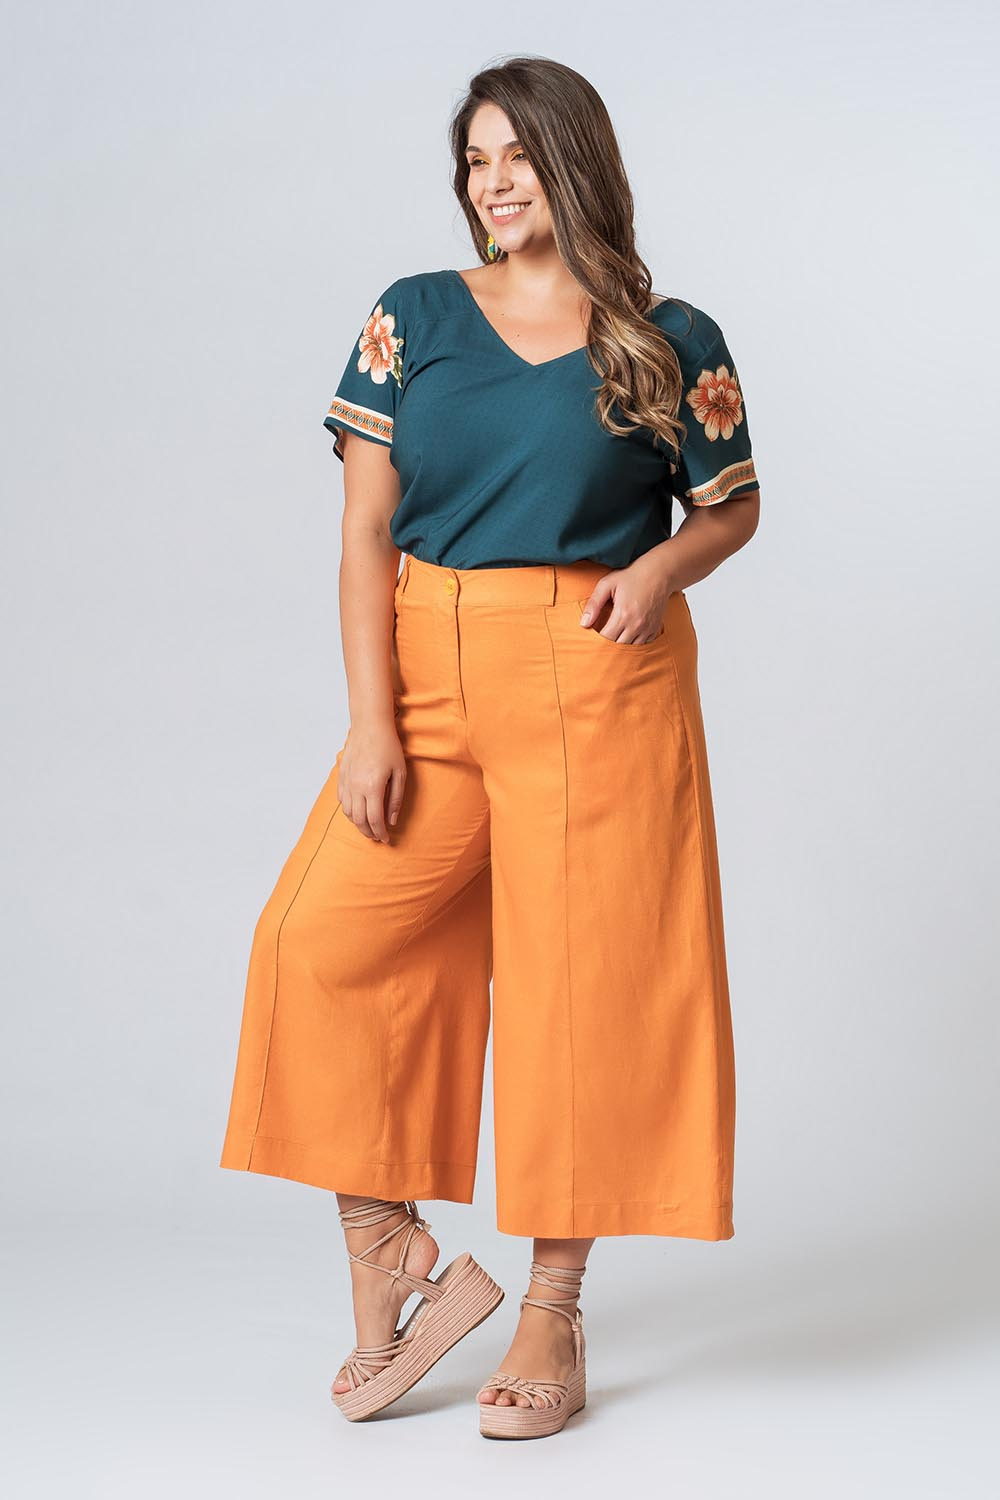 calca_plus_size_cropped_nervura_amarelo_19623_3_20200915112243